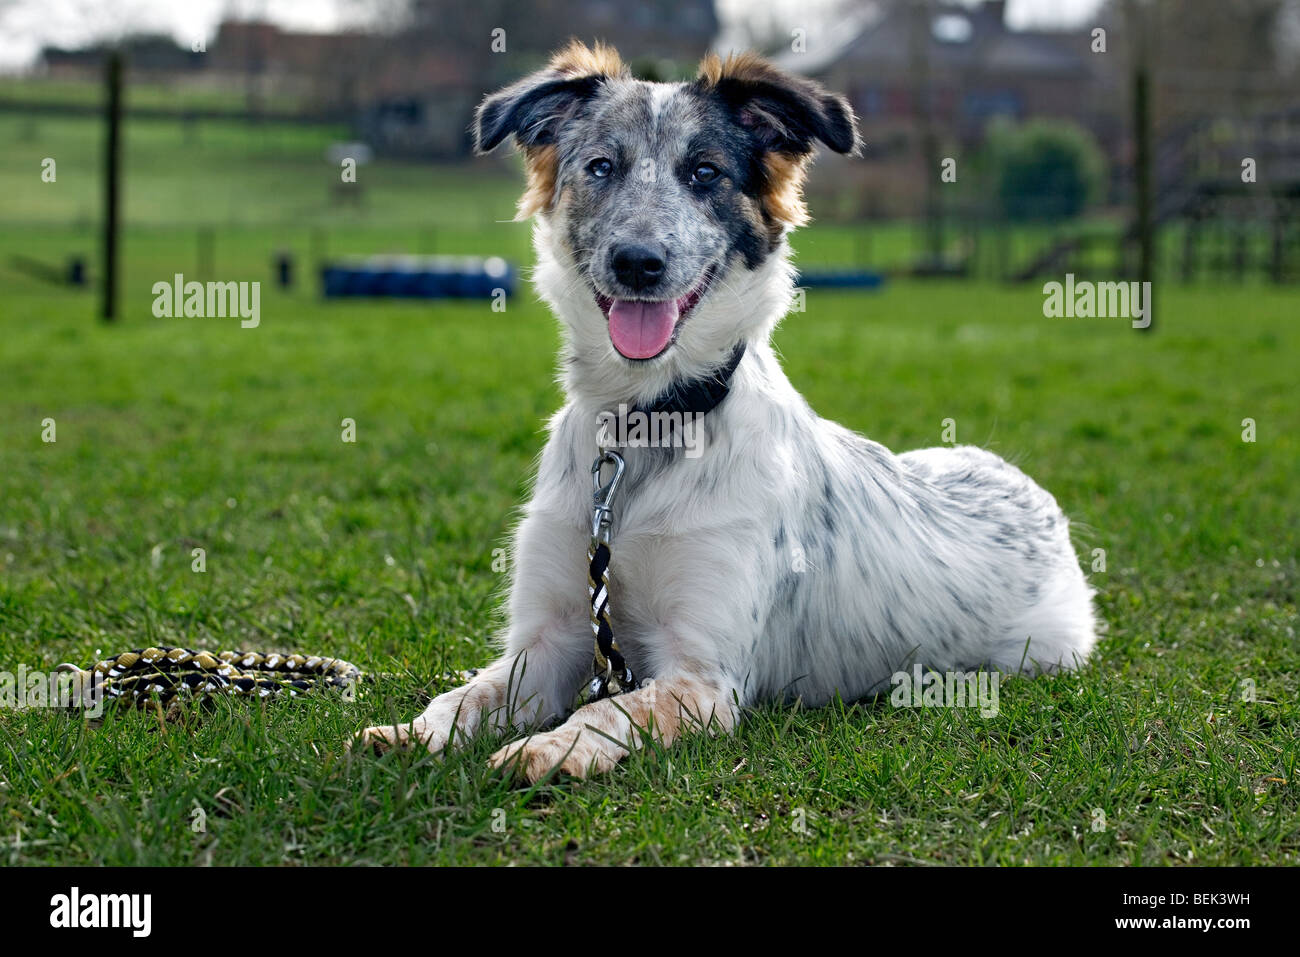 Mongrel dog lying on lawn in garden - Stock Image